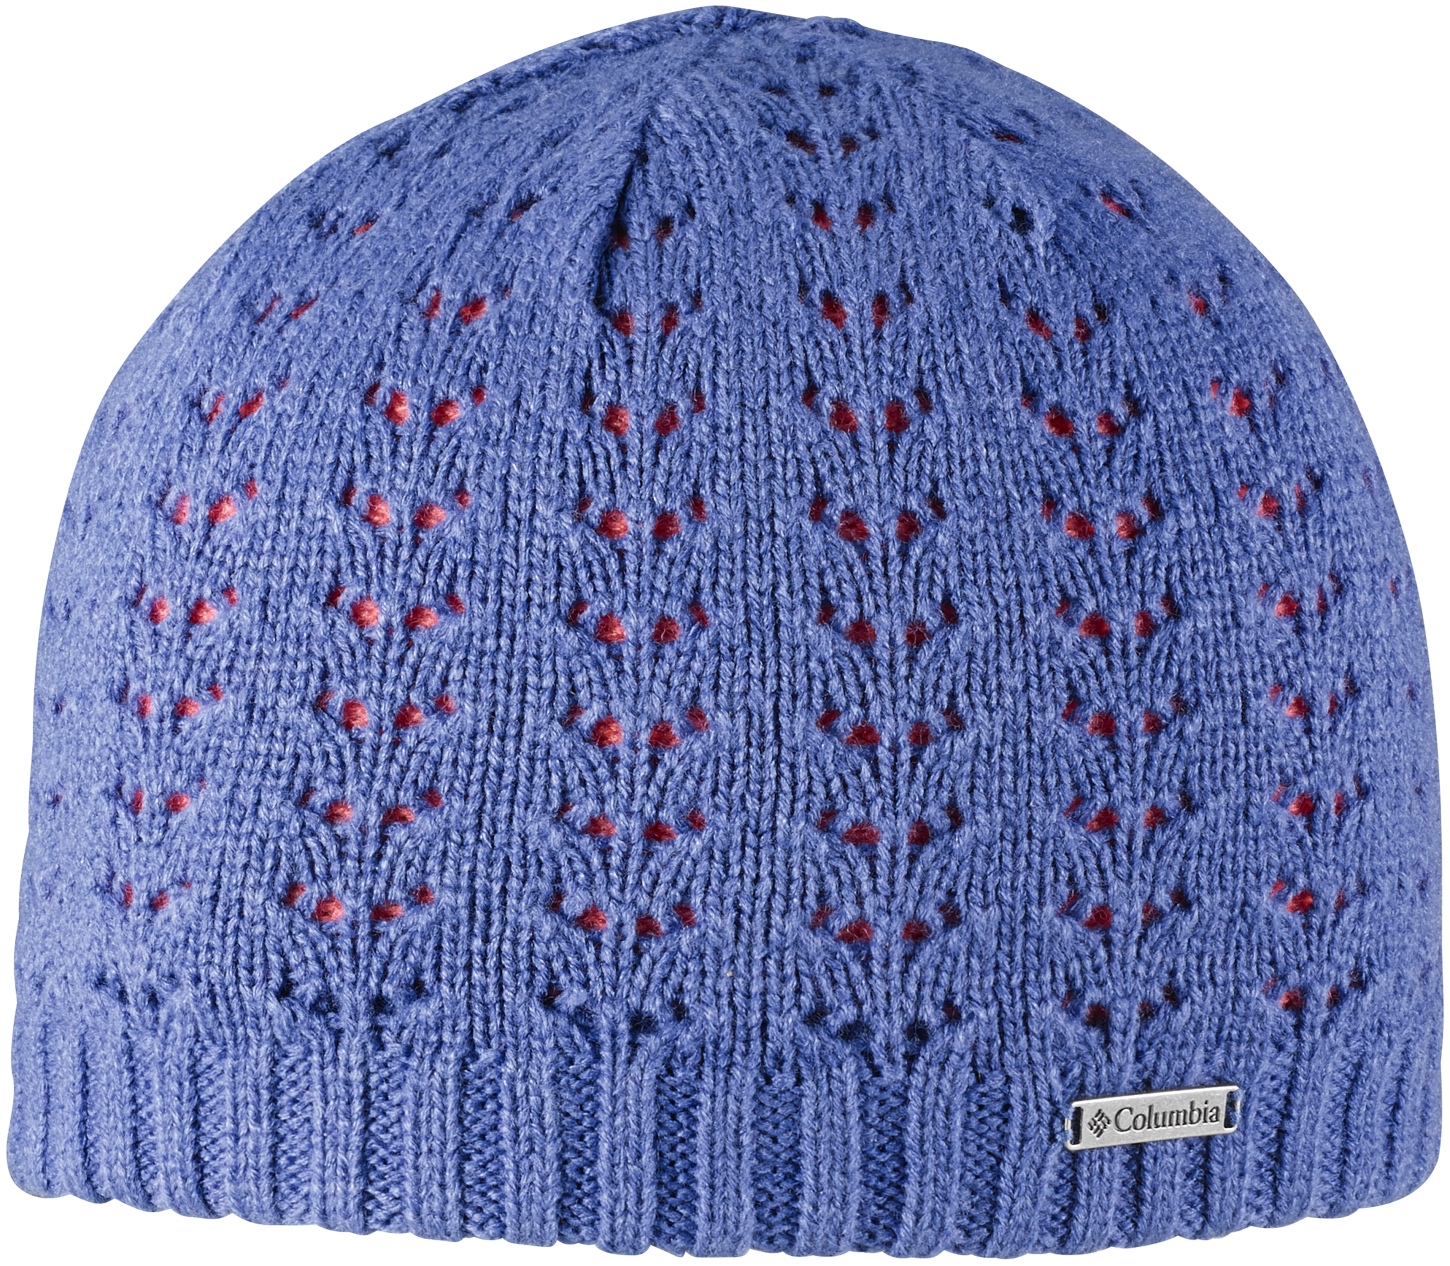 Columbia Winter Wander Beanie Bluebell-30